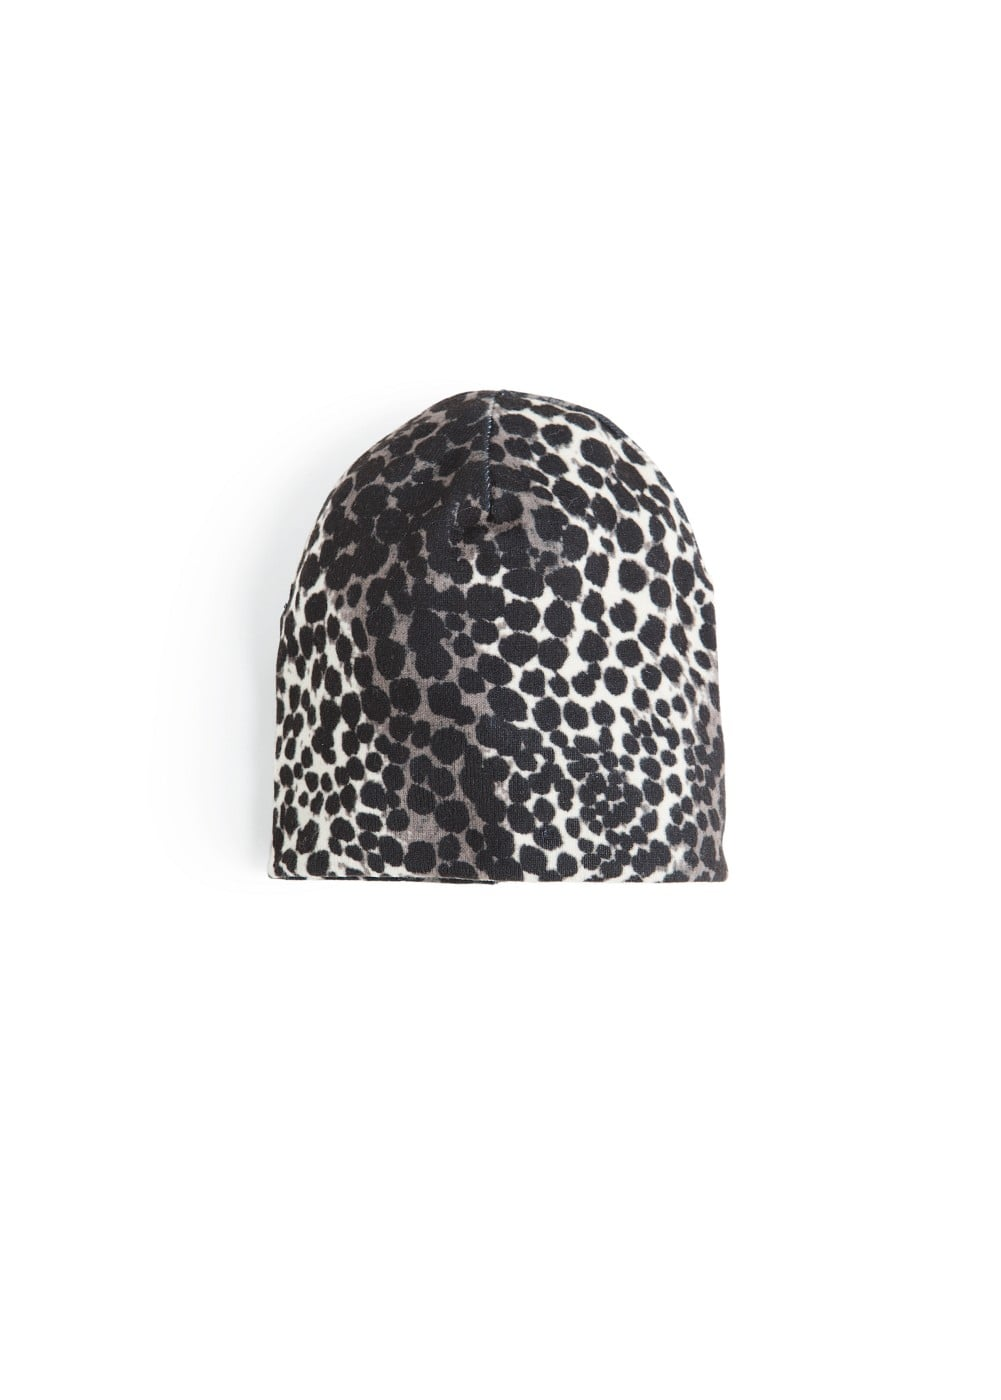 GORRO ESTAMPADO ANIMAL